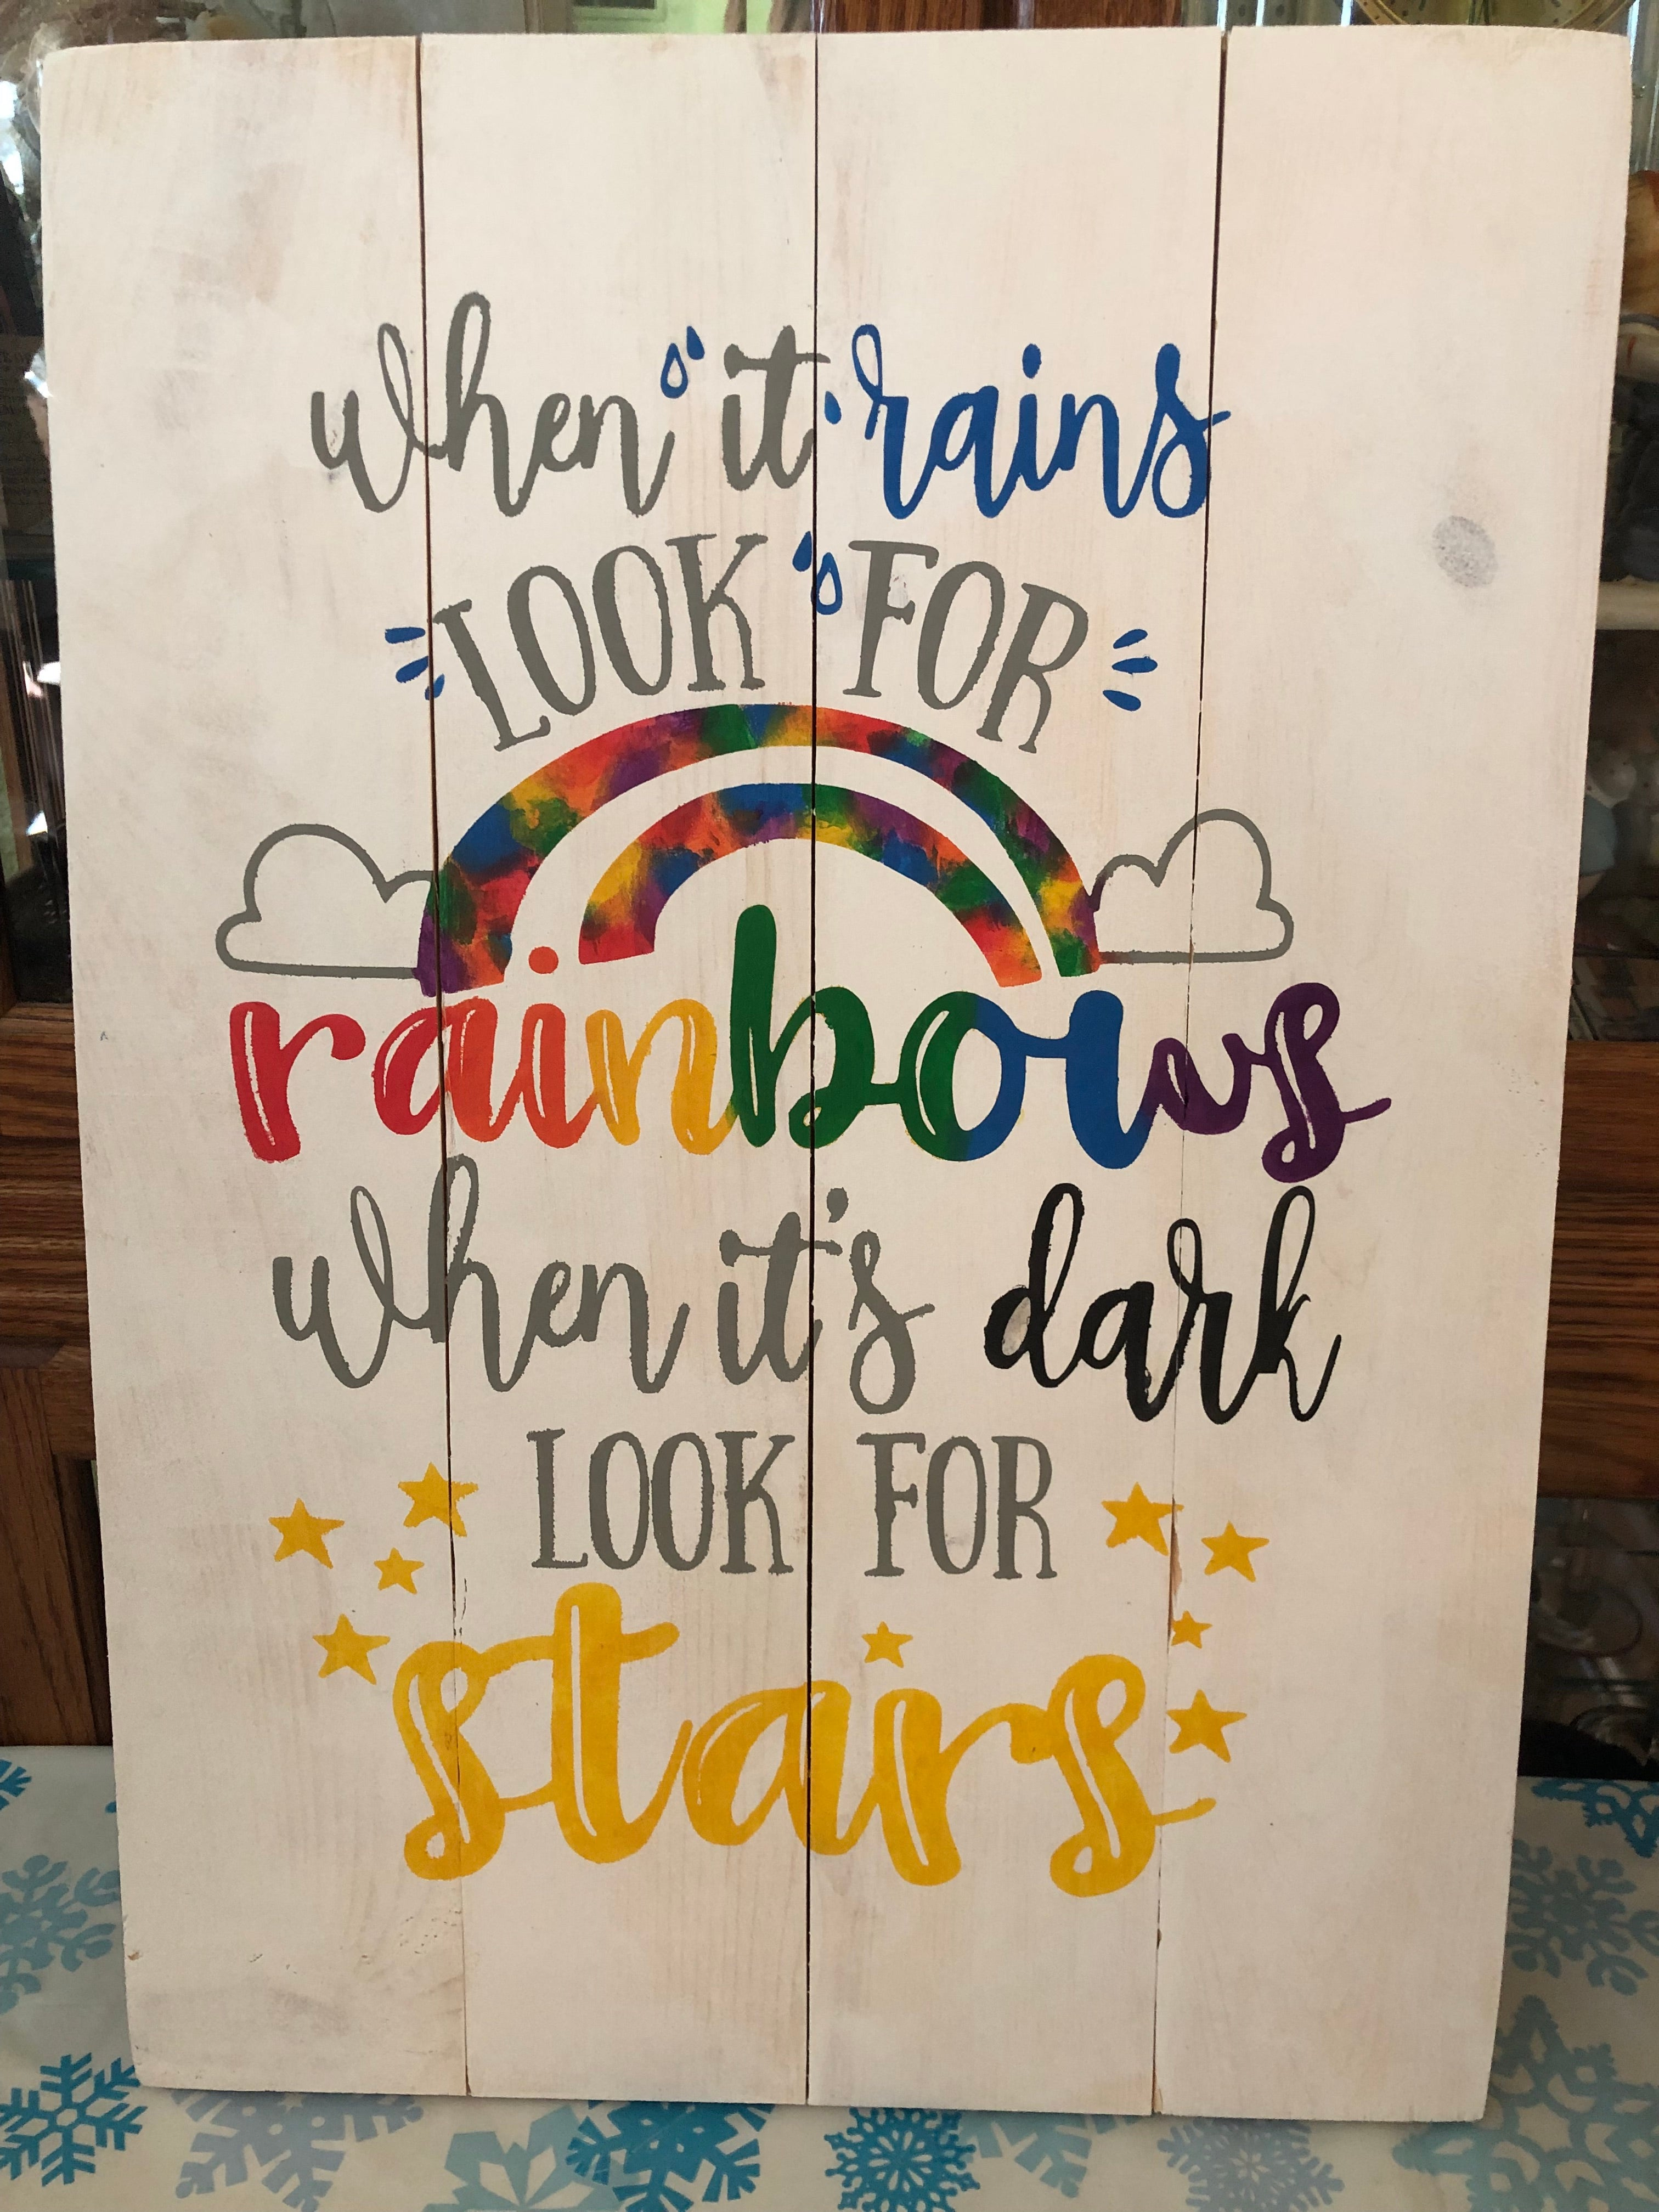 When it rains look for rainbows when its dark look for stars